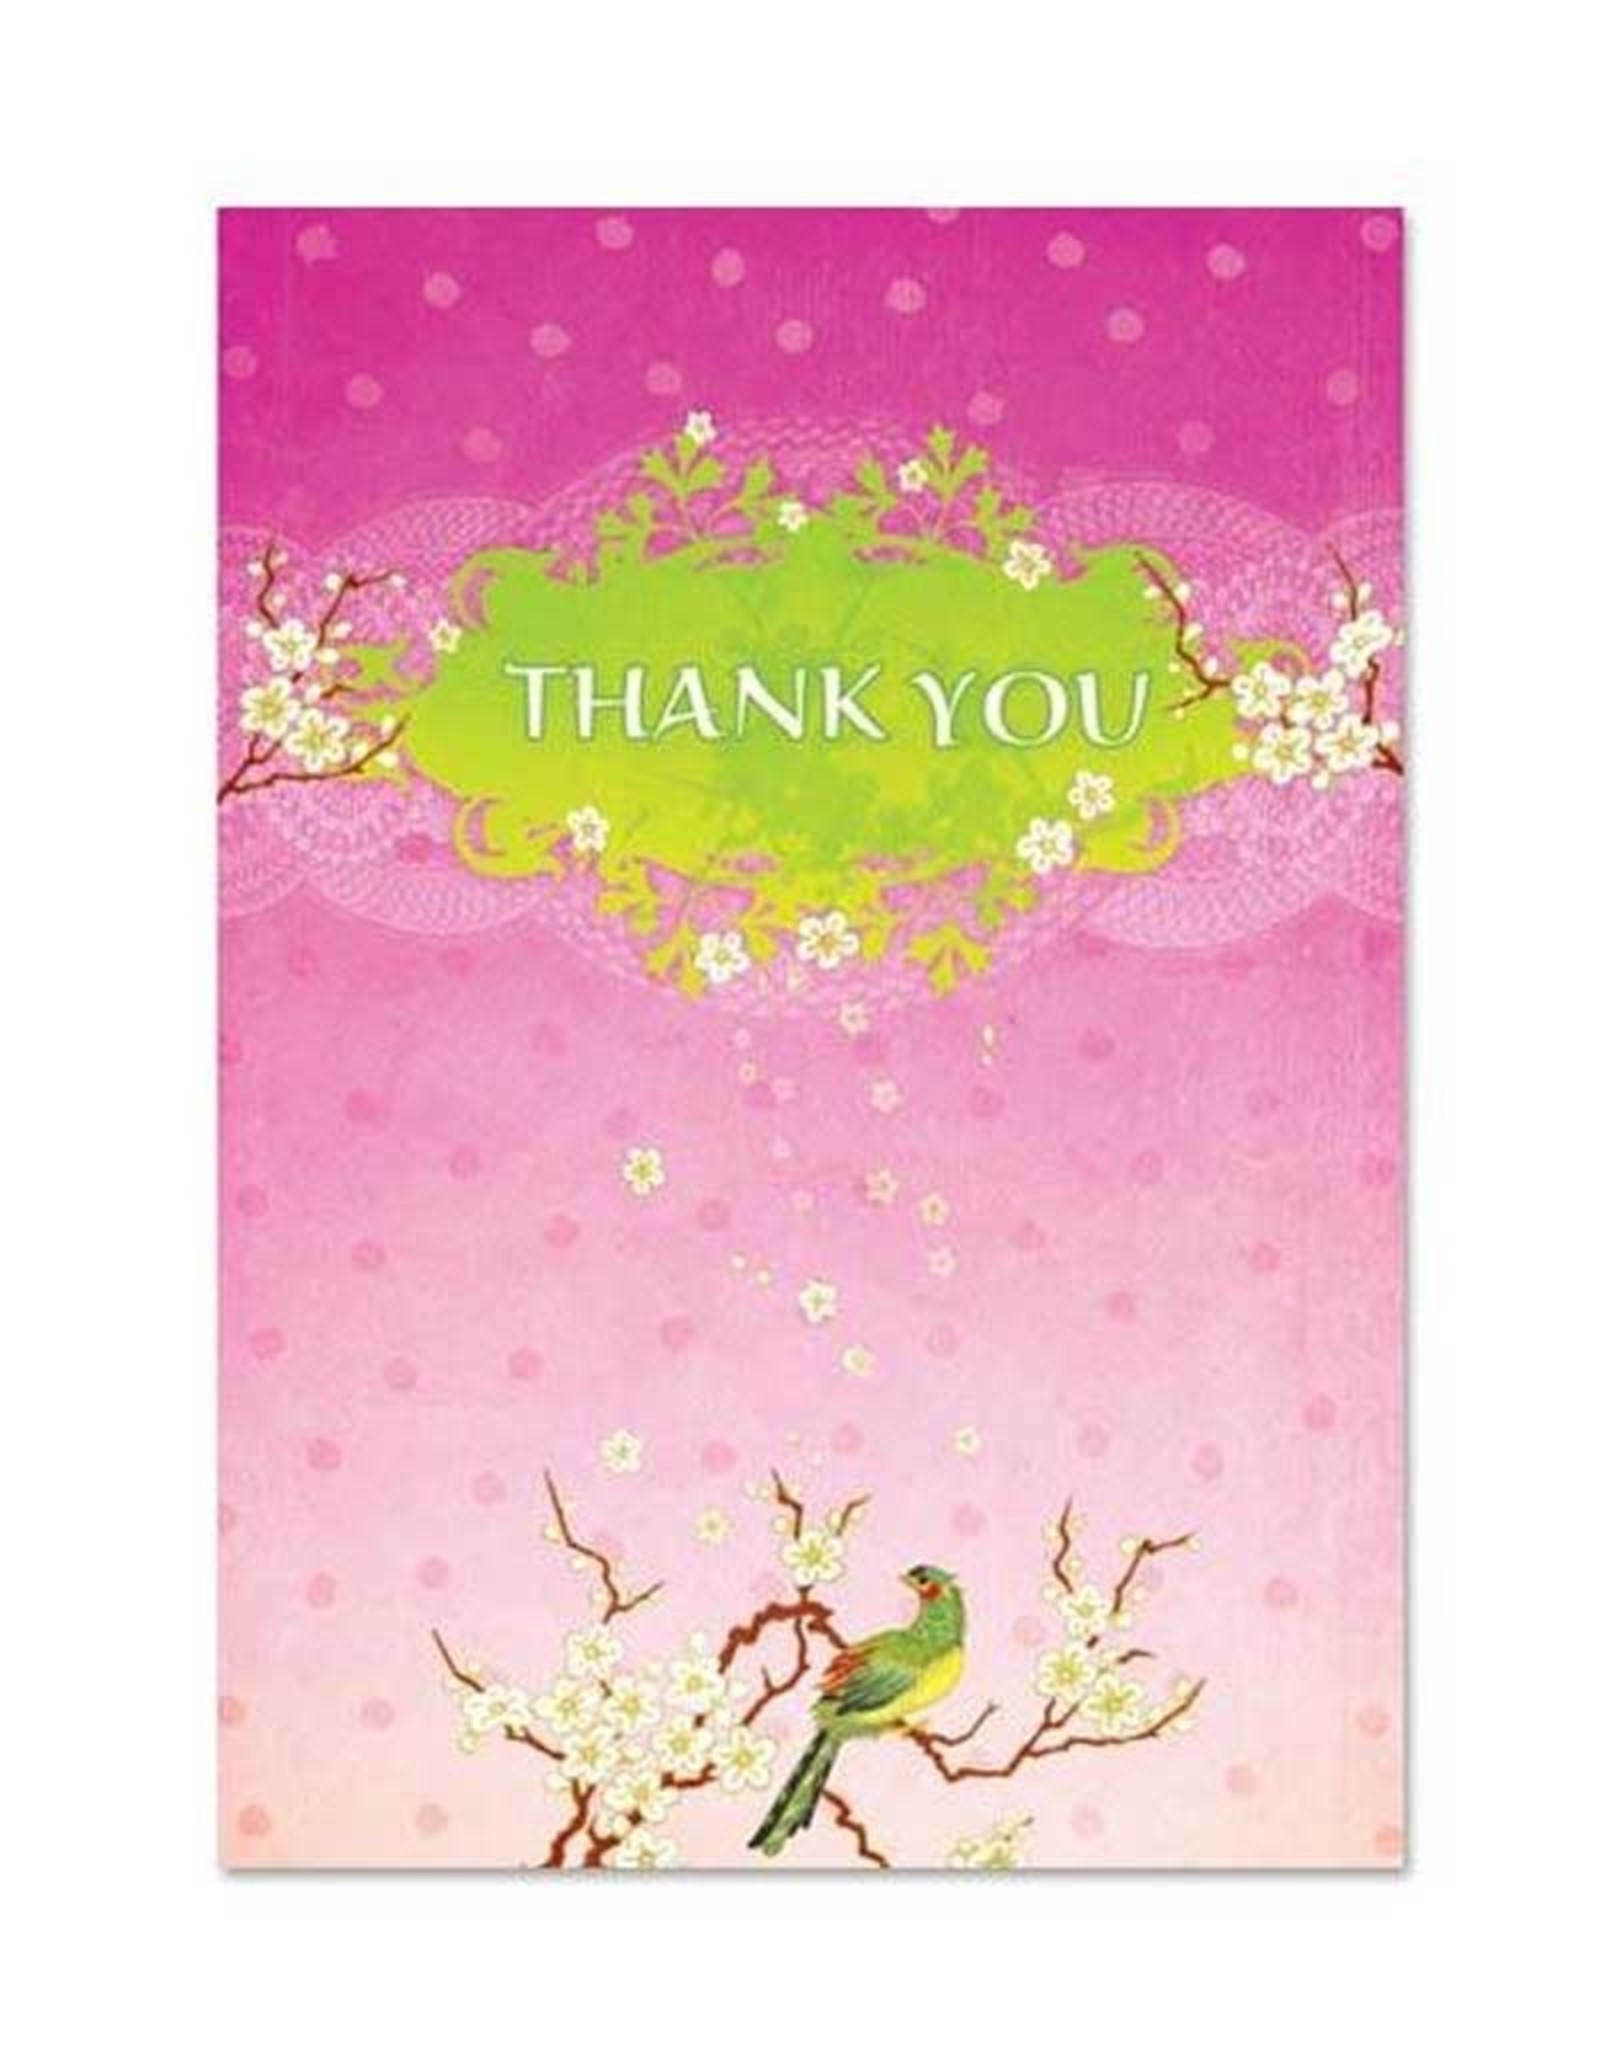 Tree - Free Greetings Blessings Like Blossoms - Greeting Card